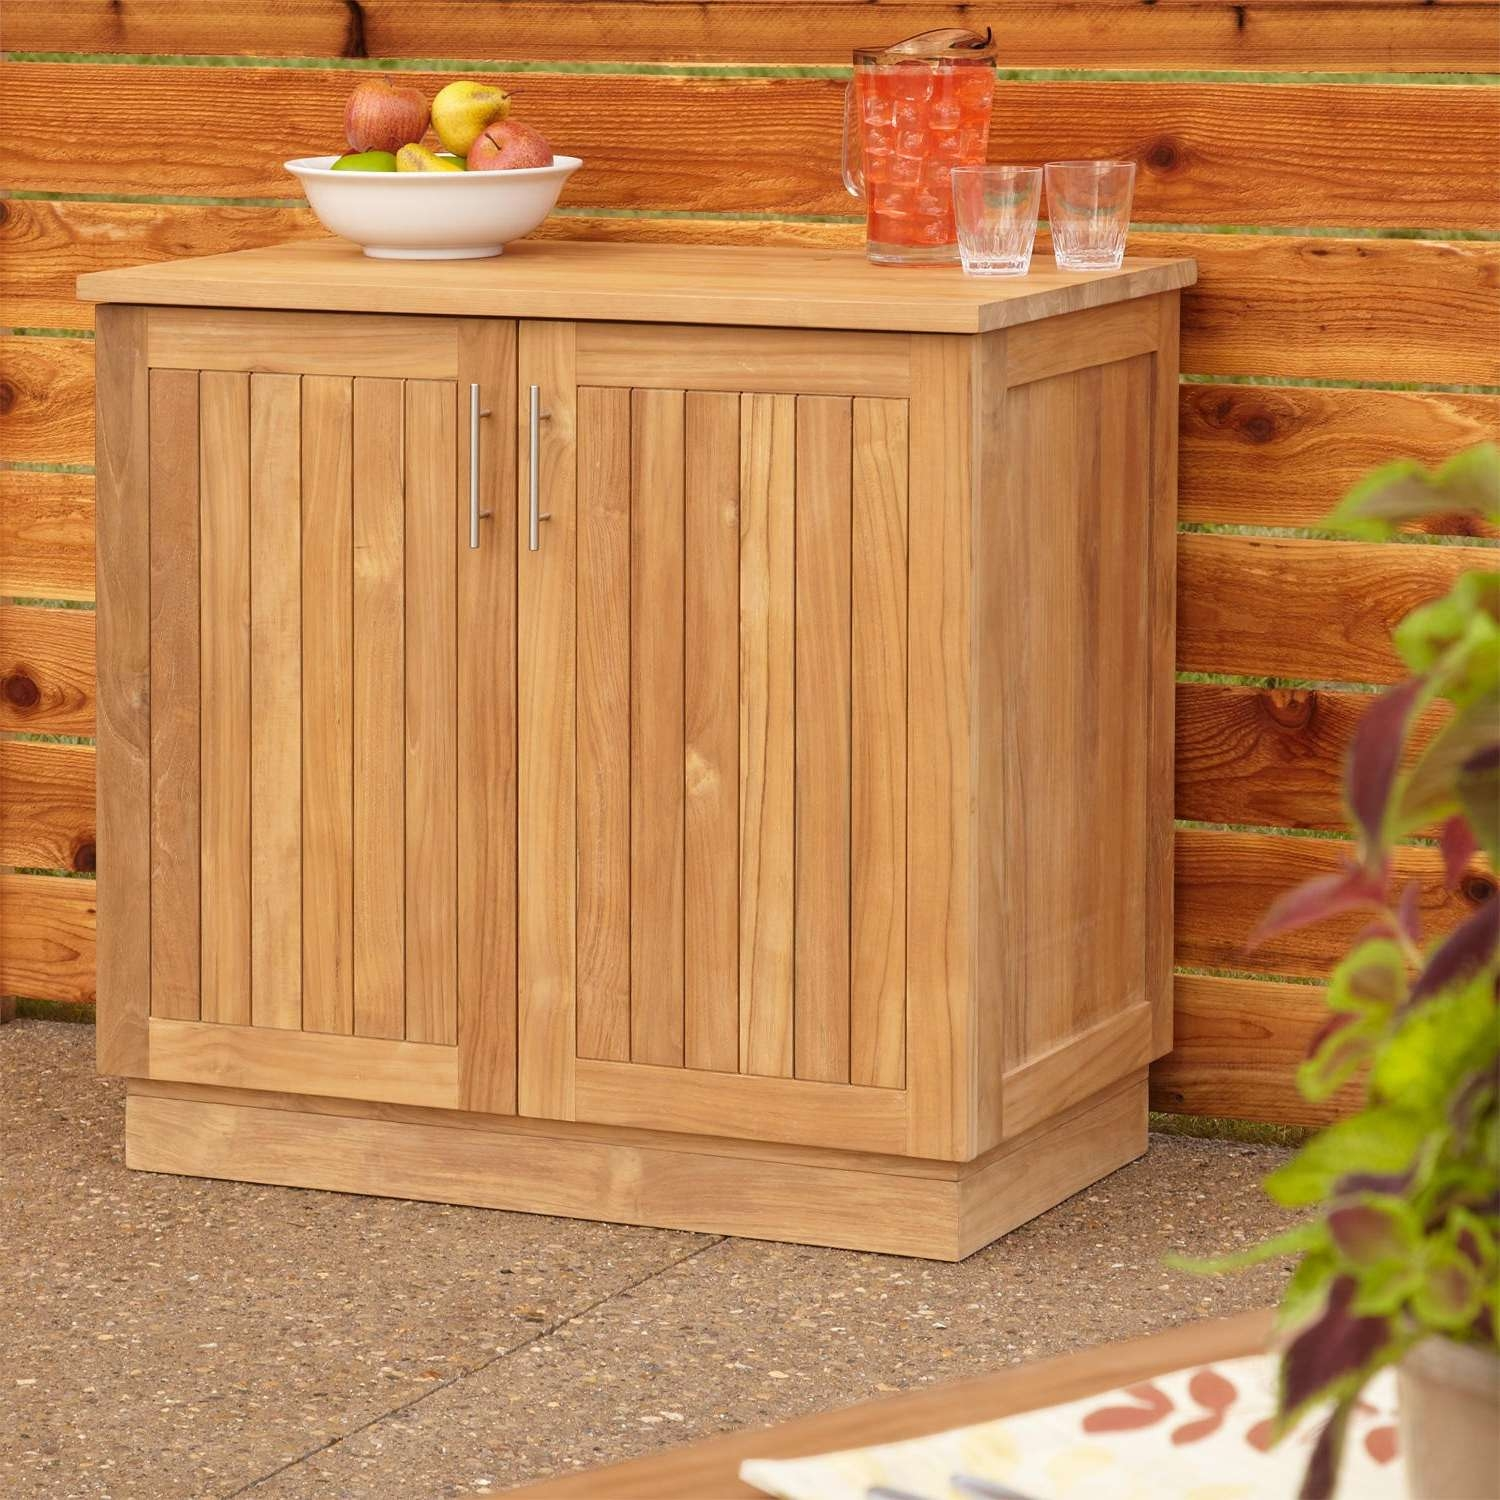 """36"""" Artois Teak Outdoor Kitchen Cabinet – Outdoor Intended For Outdoor Sideboards Cabinets (View 12 of 20)"""